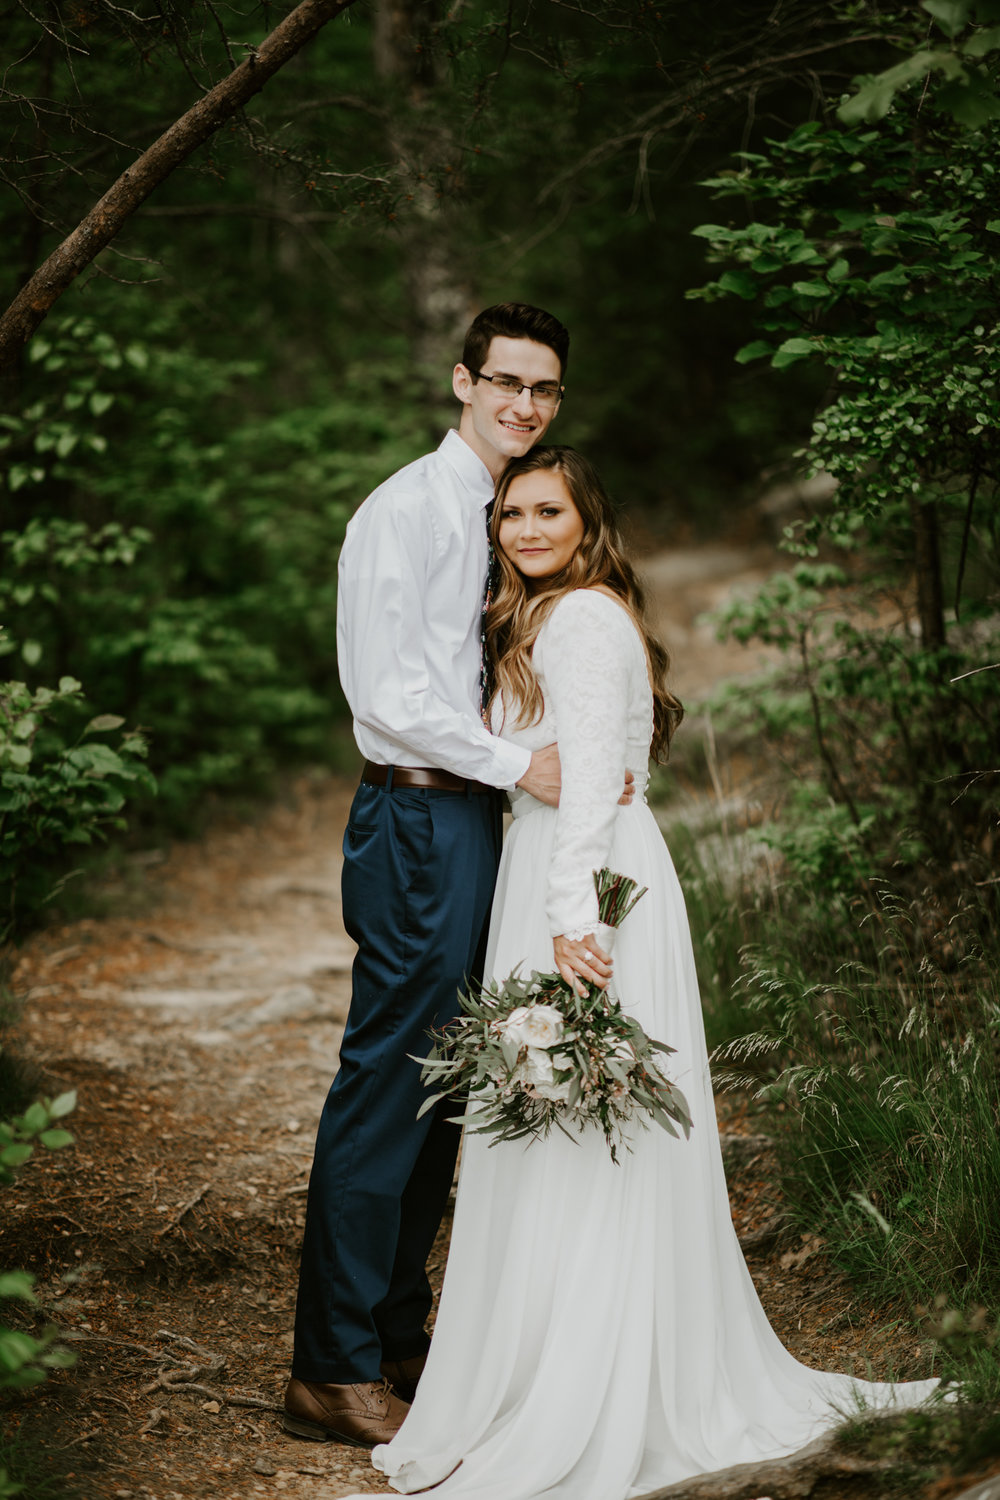 Lacey-Joe-Chattanooga-Nashville-Tennessee-Wedding-Elopement-Photographer-136.jpg